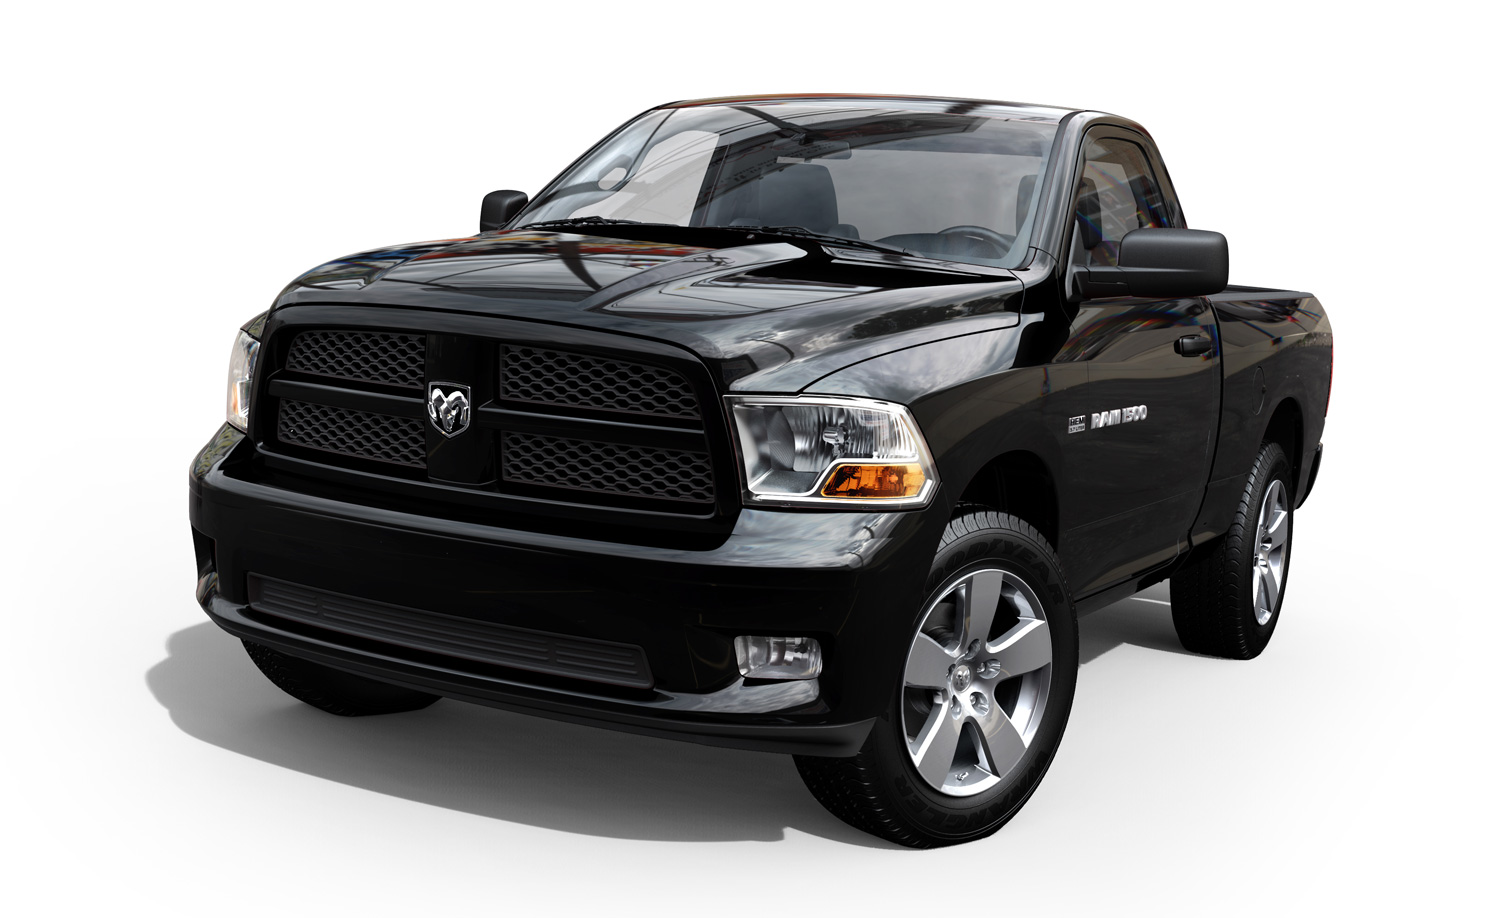 hight resolution of name game ram adventurer becomes 2011 ram 1500 express